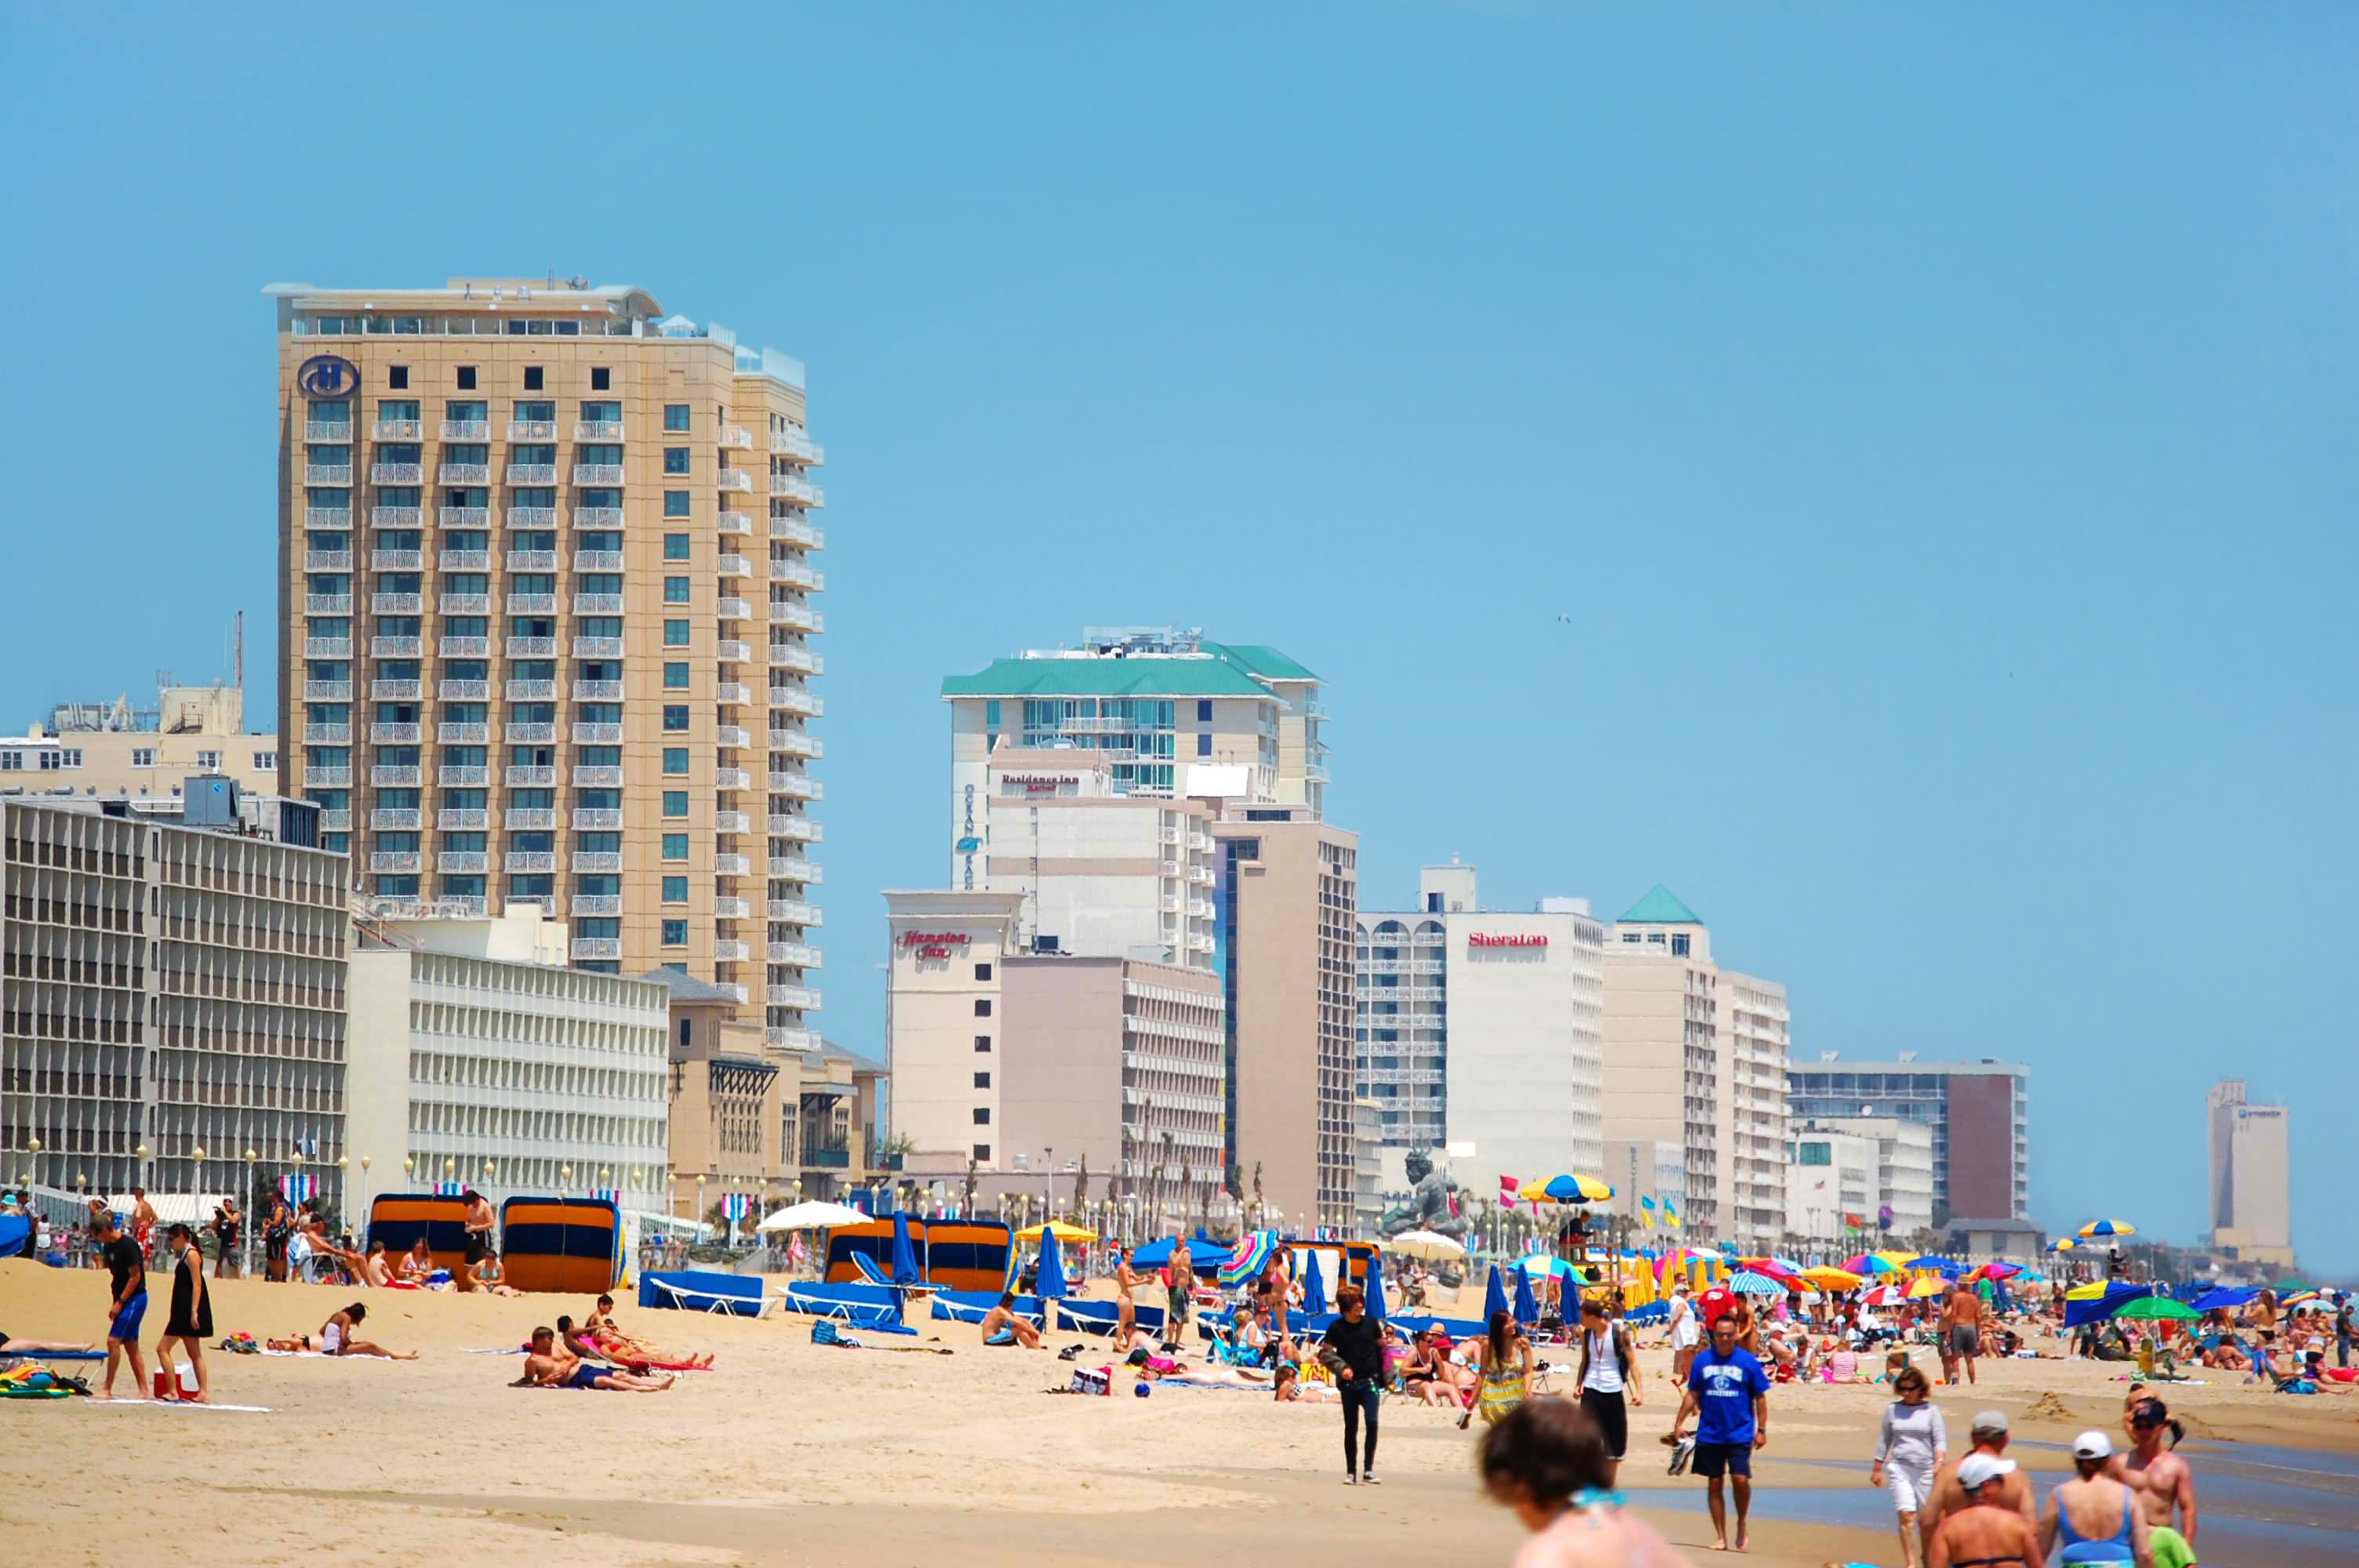 Virginia Beach Oceanfront Zip Code